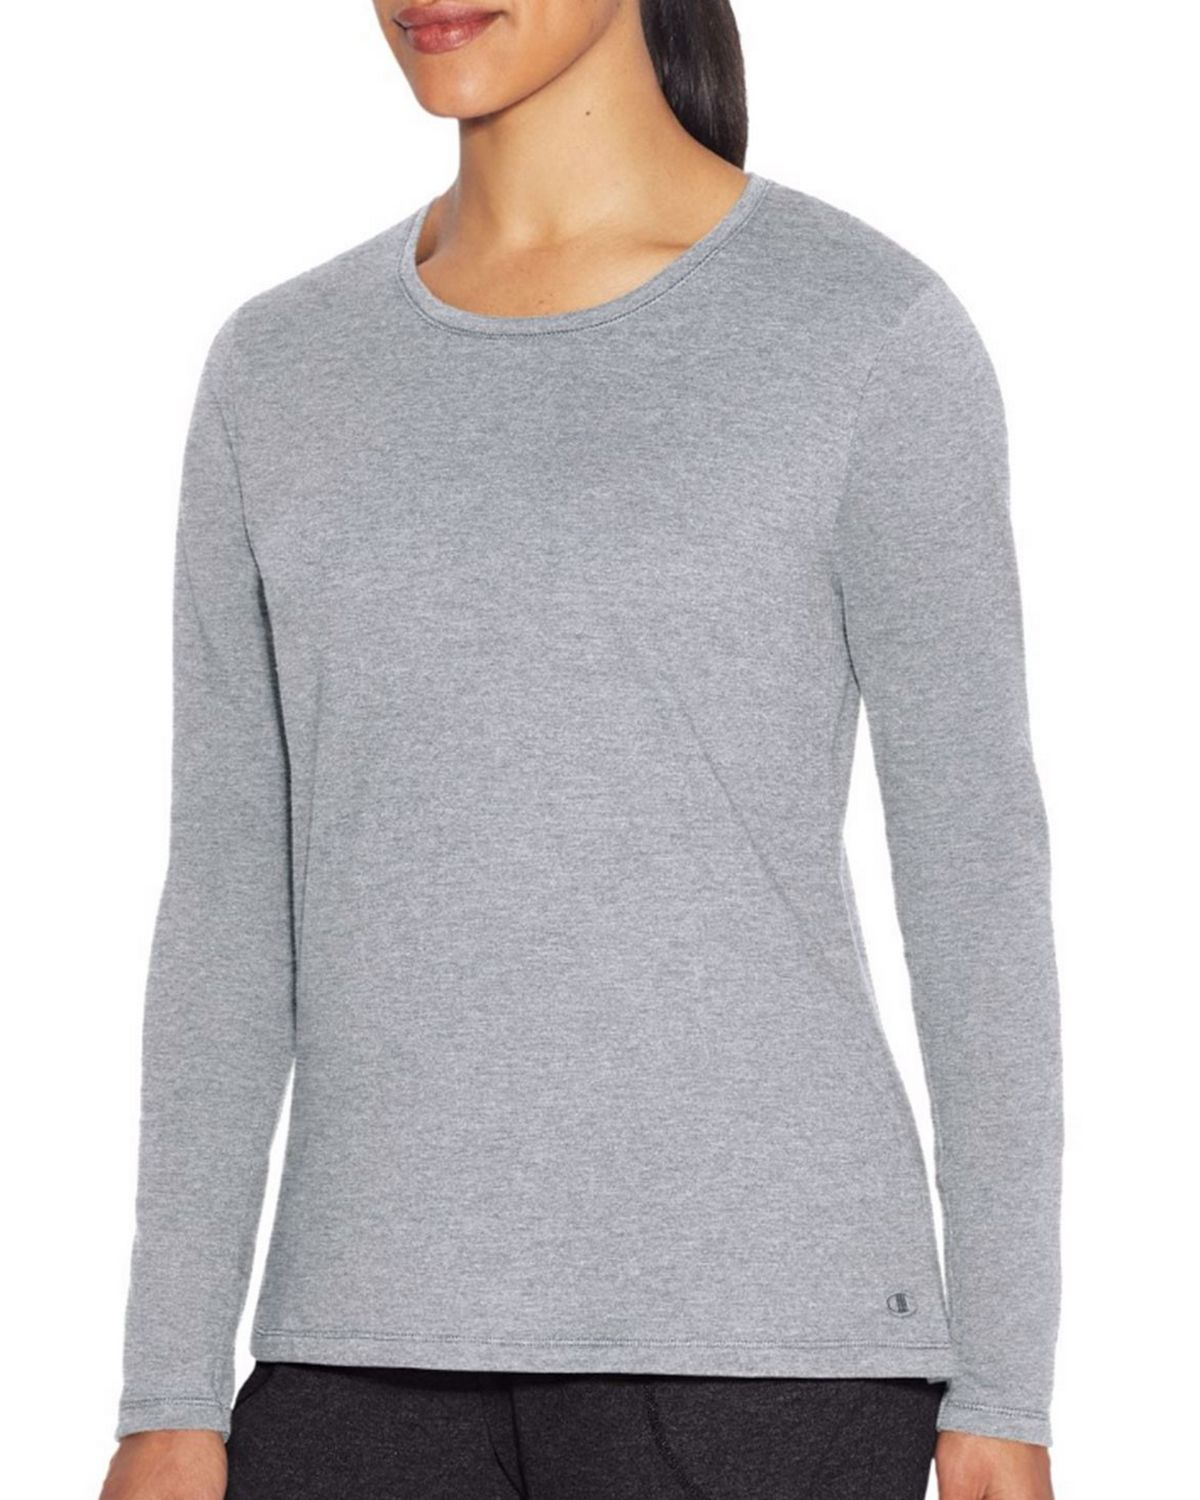 Champion W29563 Womens Vapor Tee - Oxford Grey Heather - XS W29563